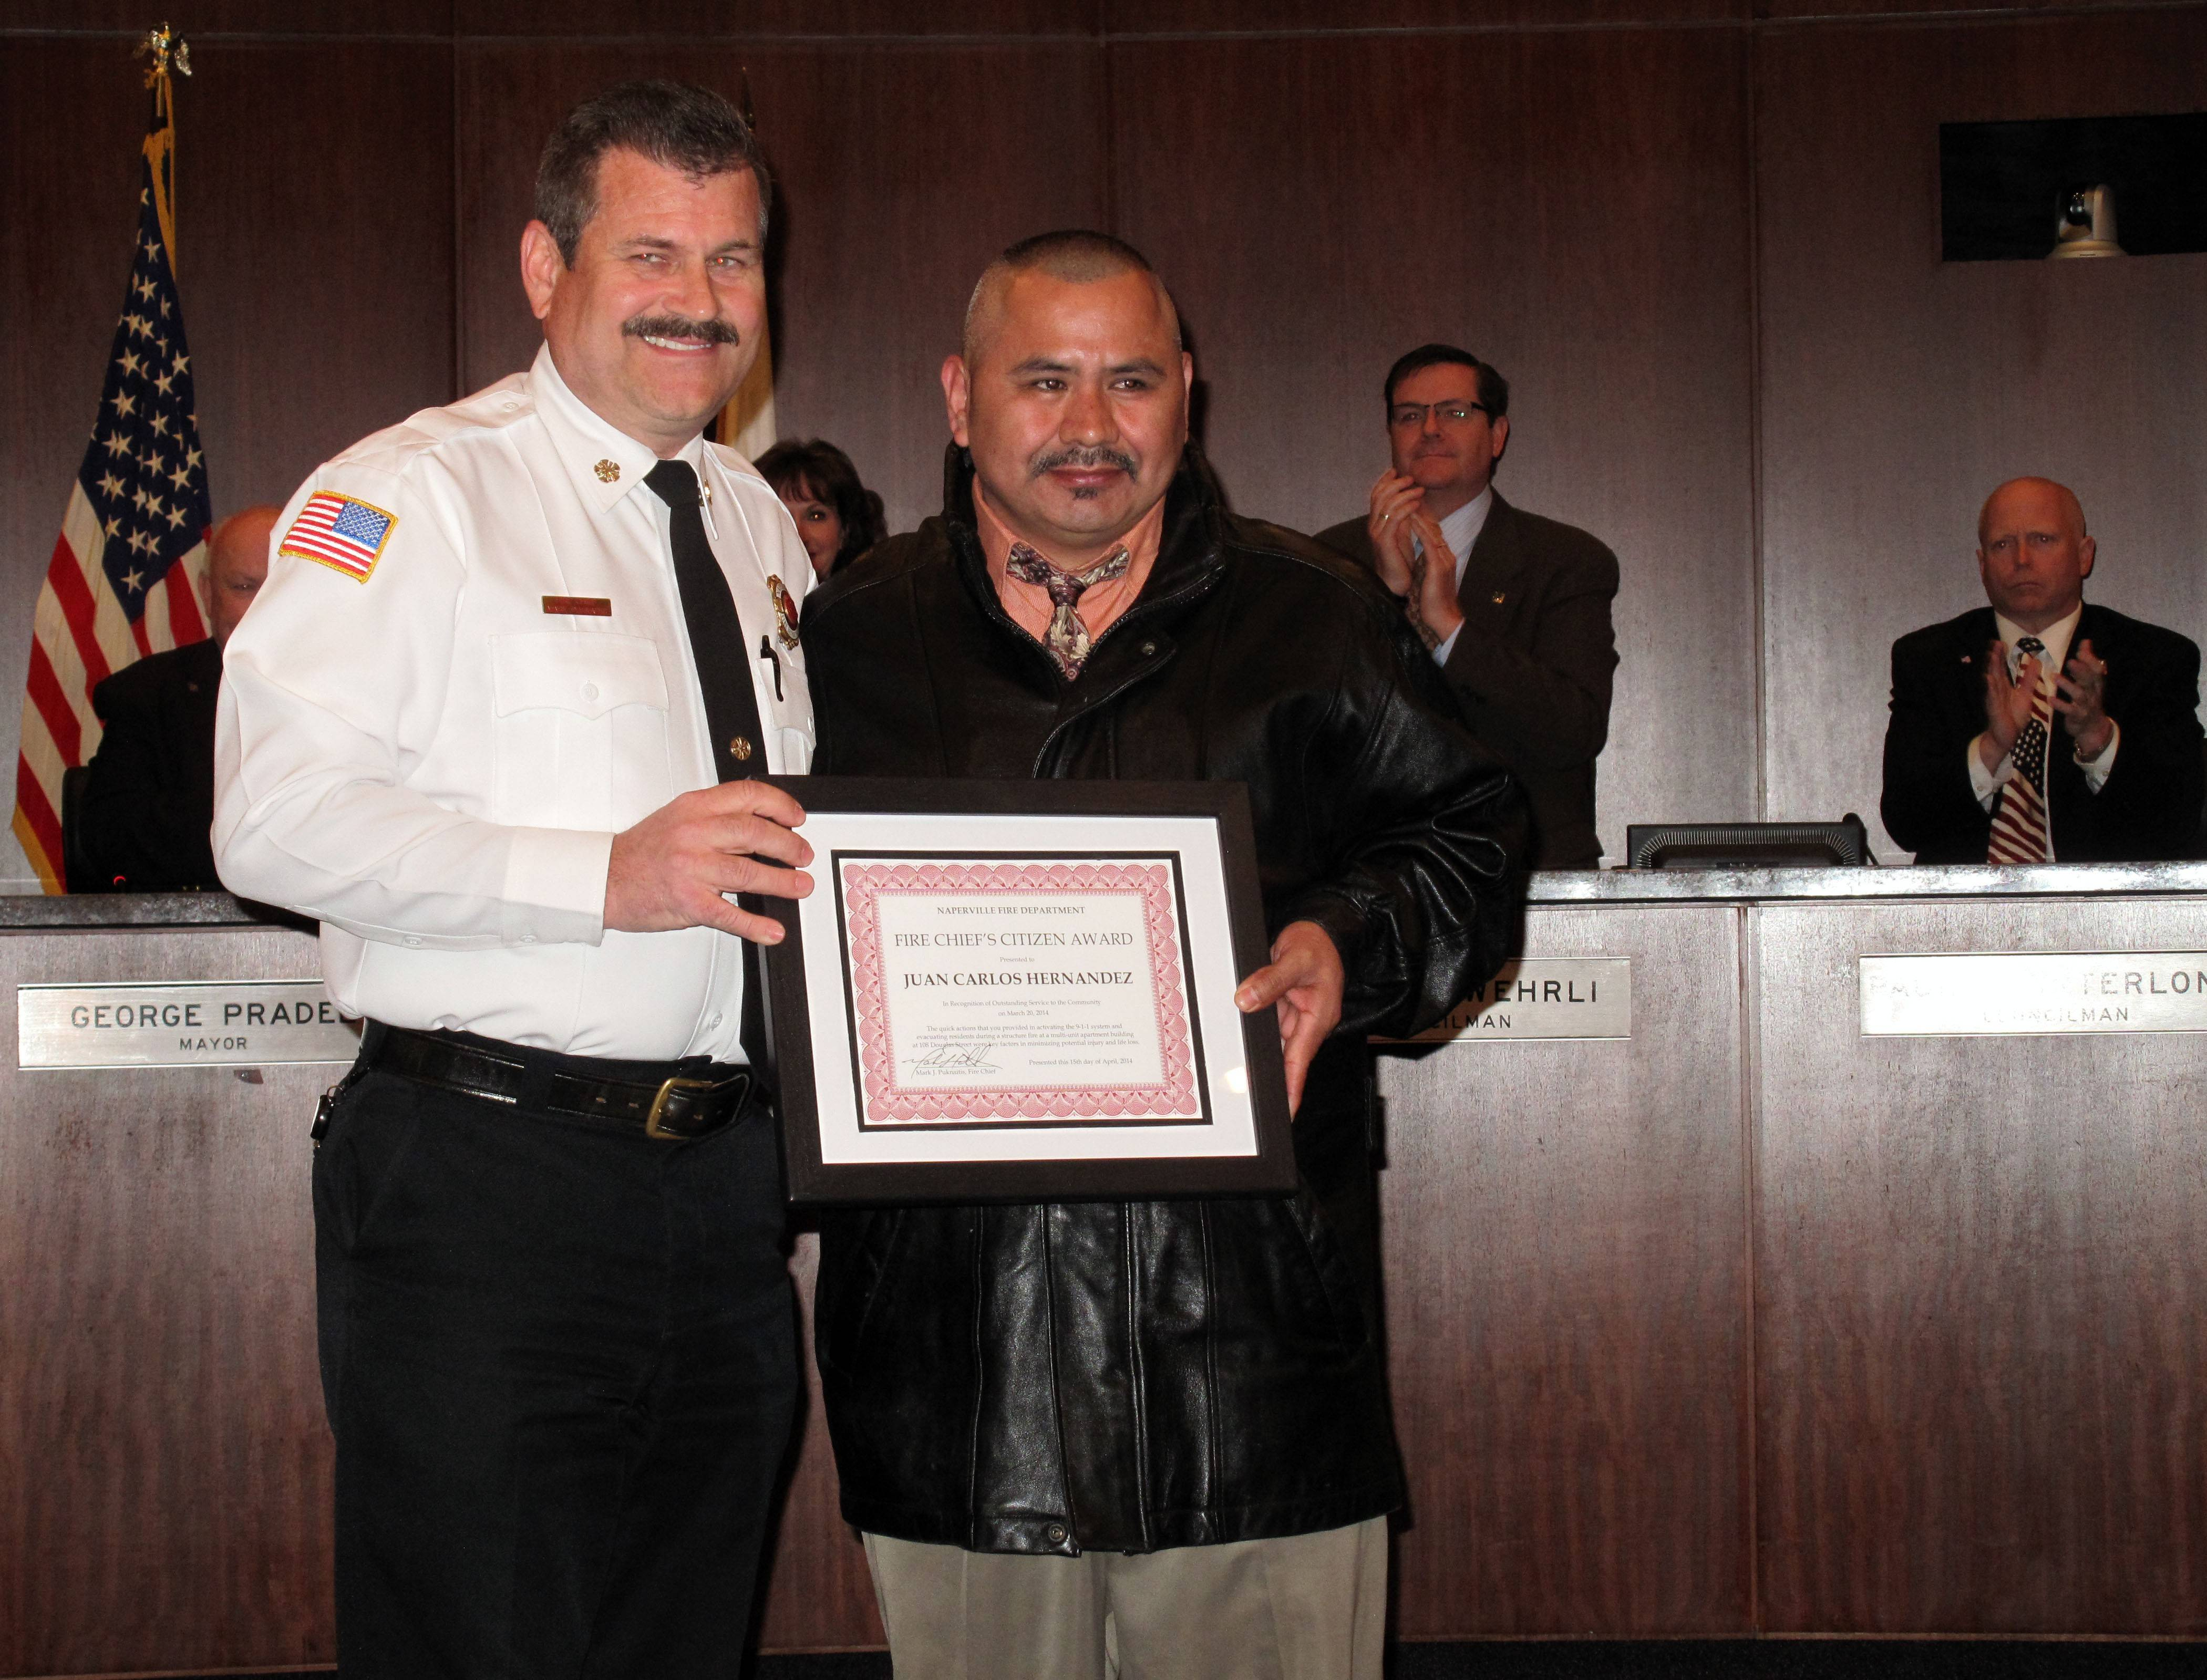 Juan Carlos Hernandez, 39, of Naperville, receives the Fire Chief's Award from Naperville Chief Mark Puknaitis for his efforts to help evacuate residents of an apartment building that caught fire March 20.